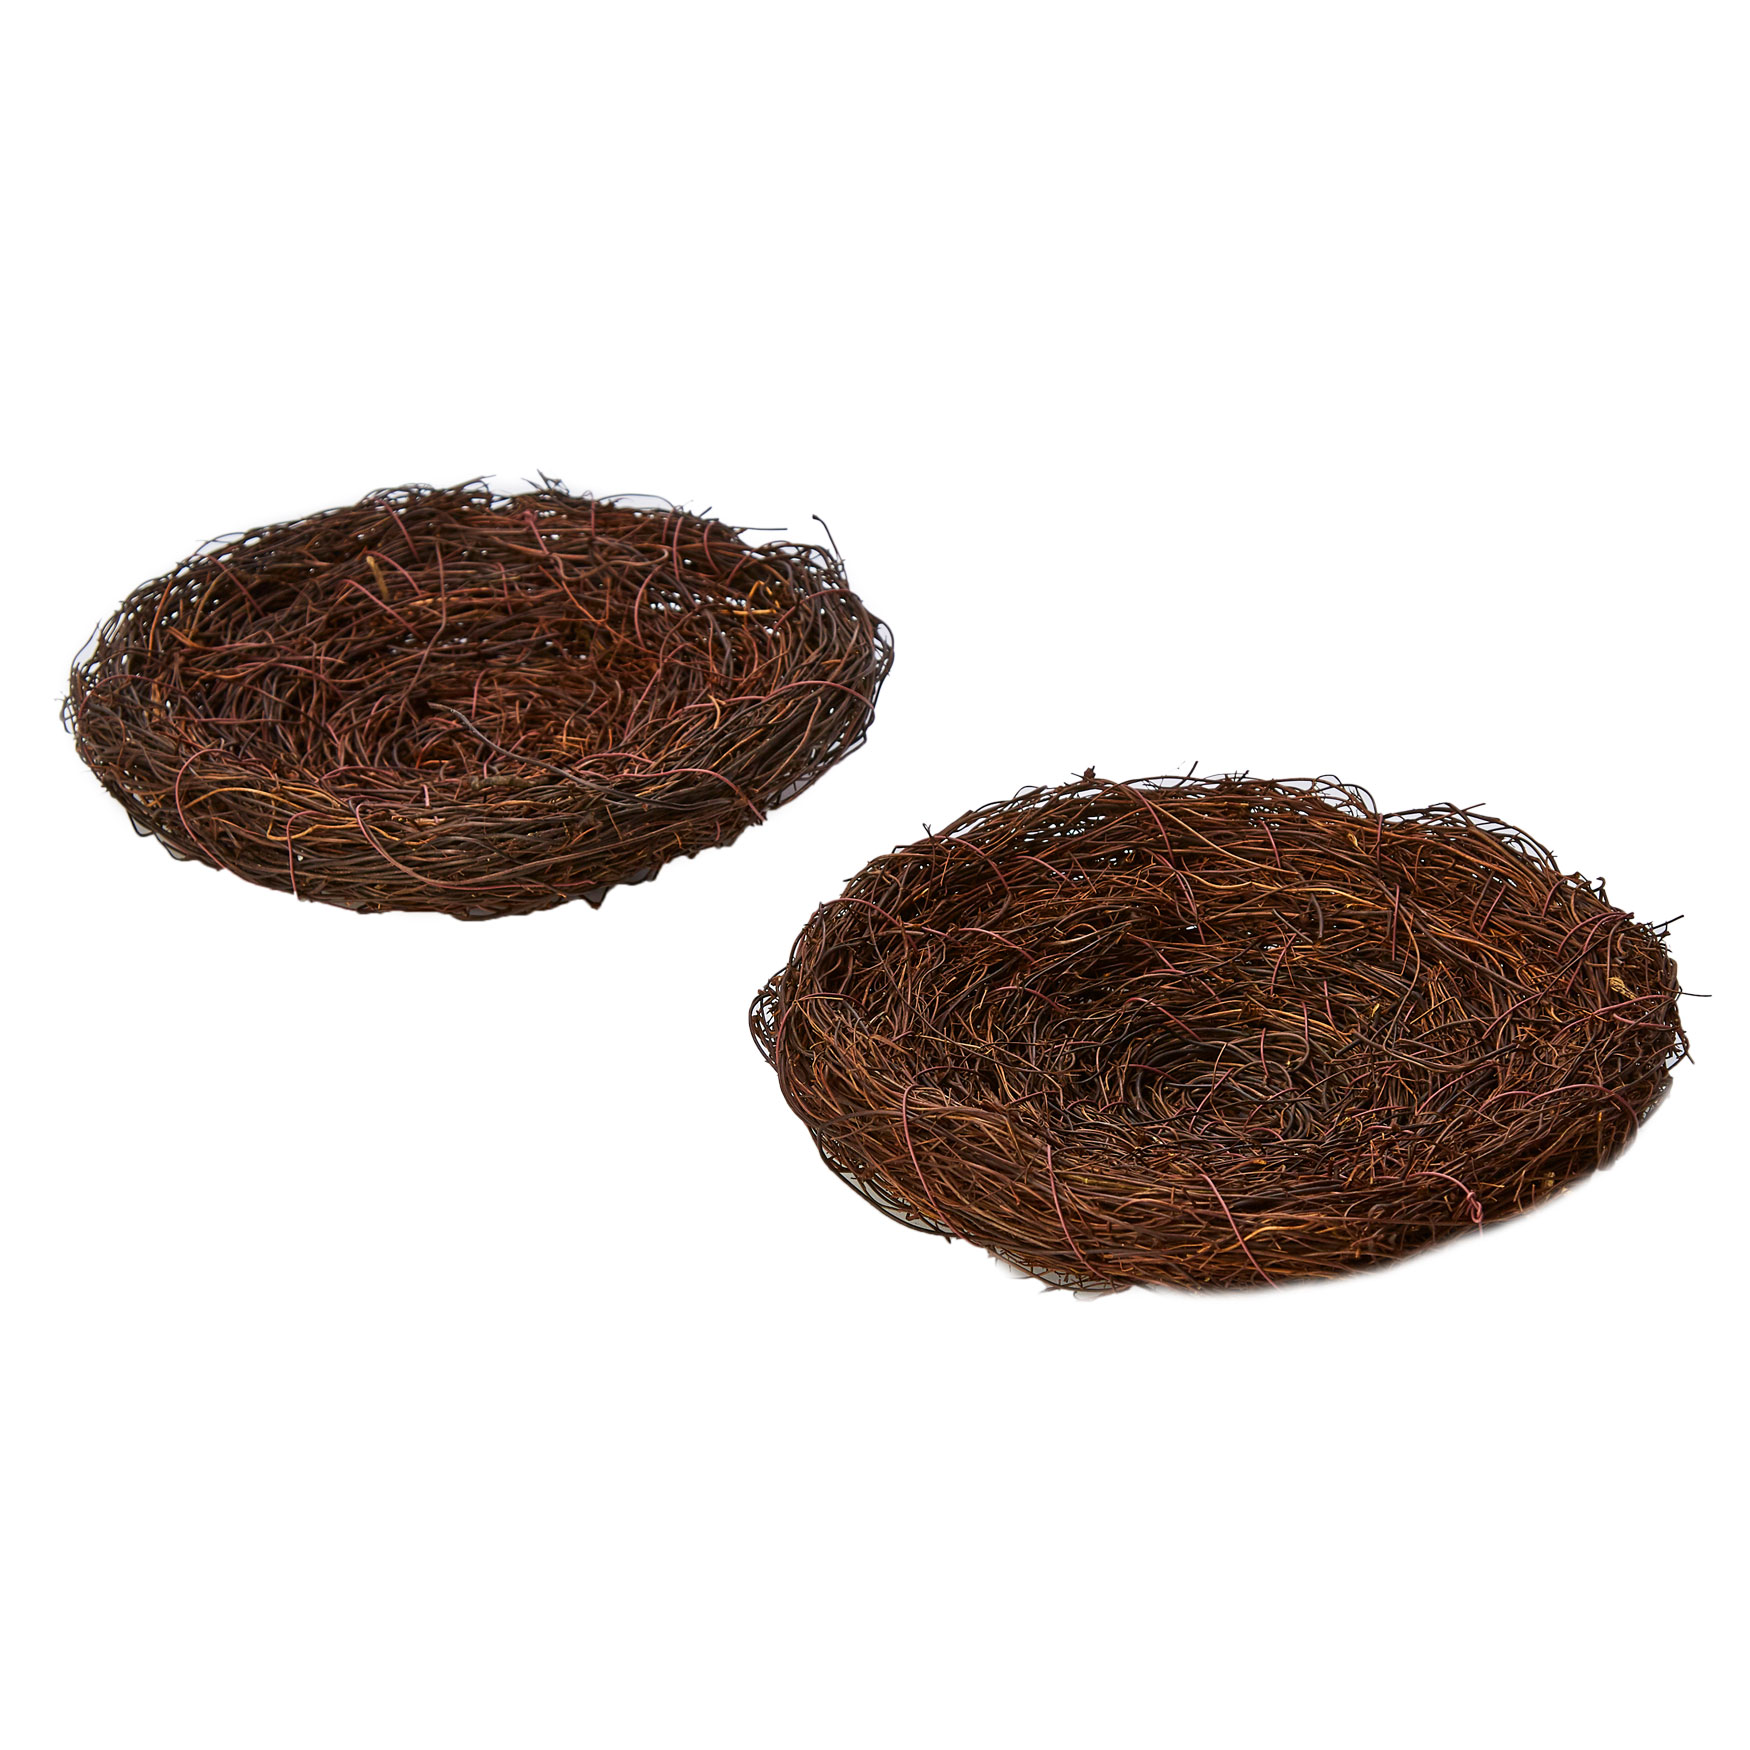 Decorative Nest, Set of 2, BROWN